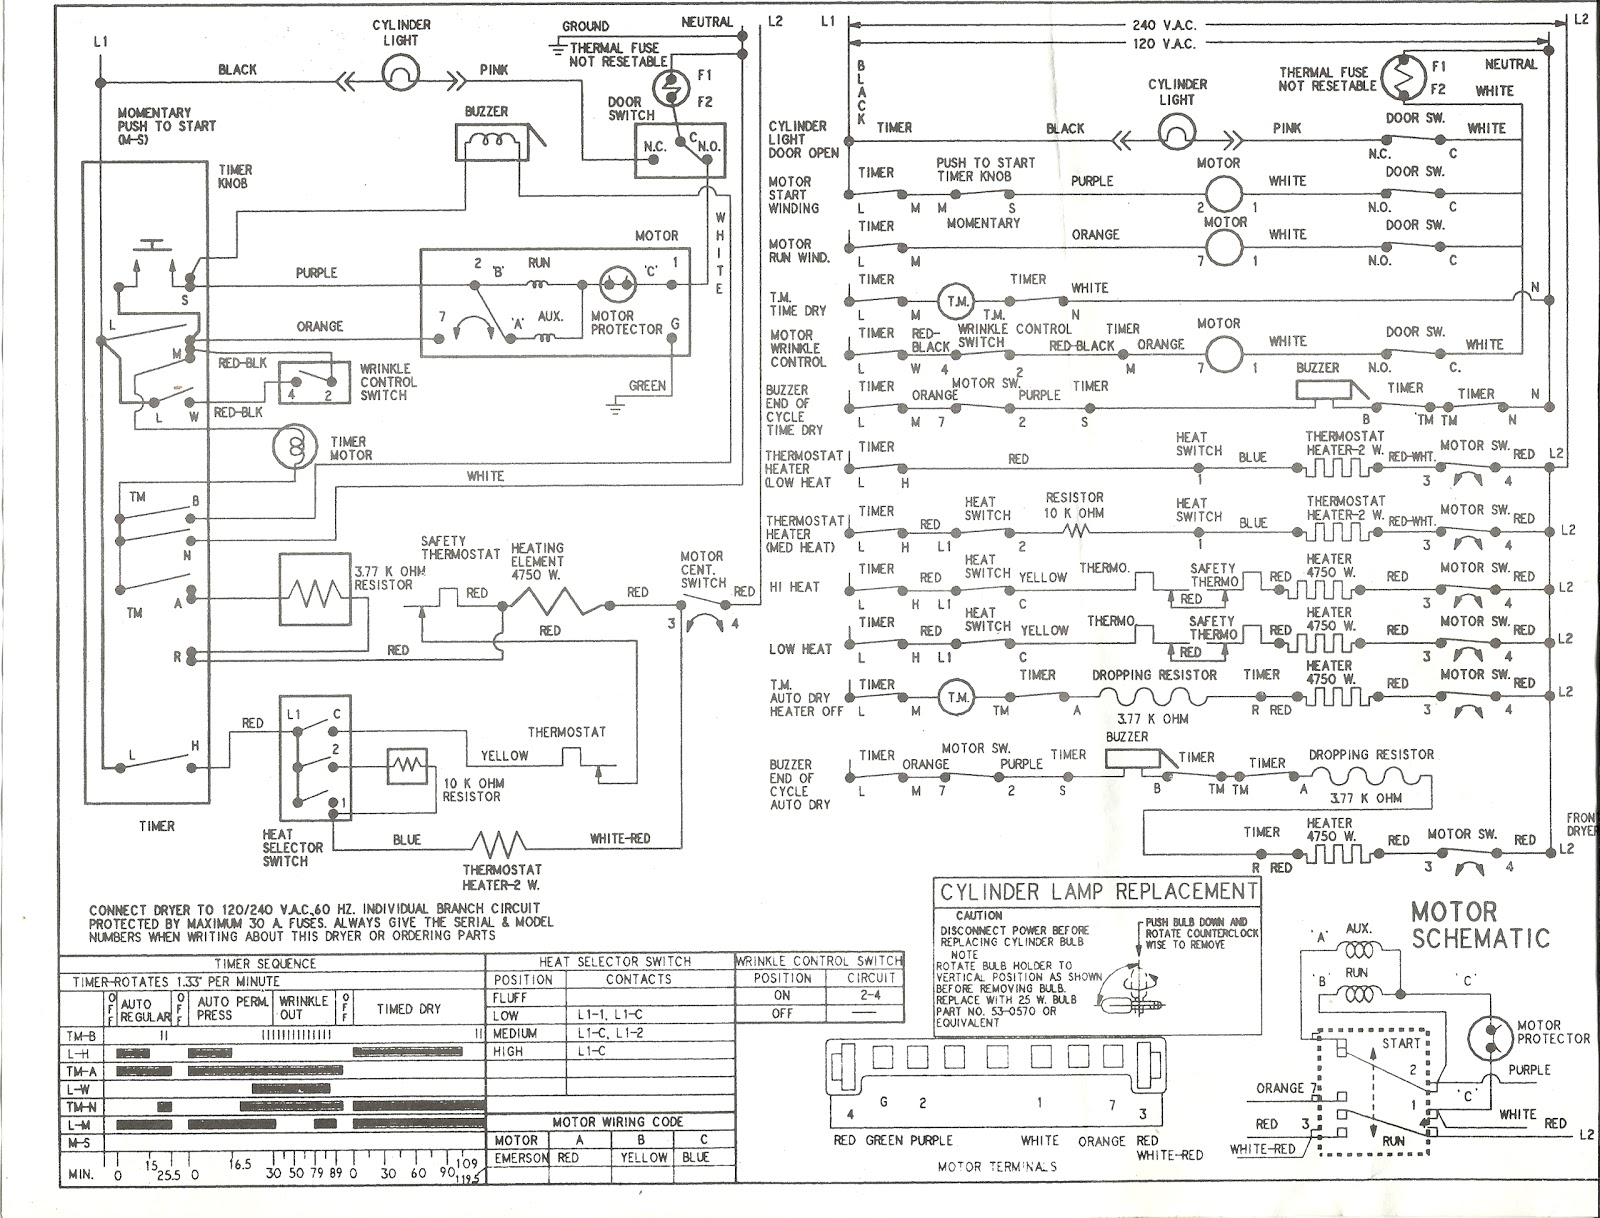 Appliance talk kenmore series electric dryer wiring diagram schematic asfbconference2016 Gallery